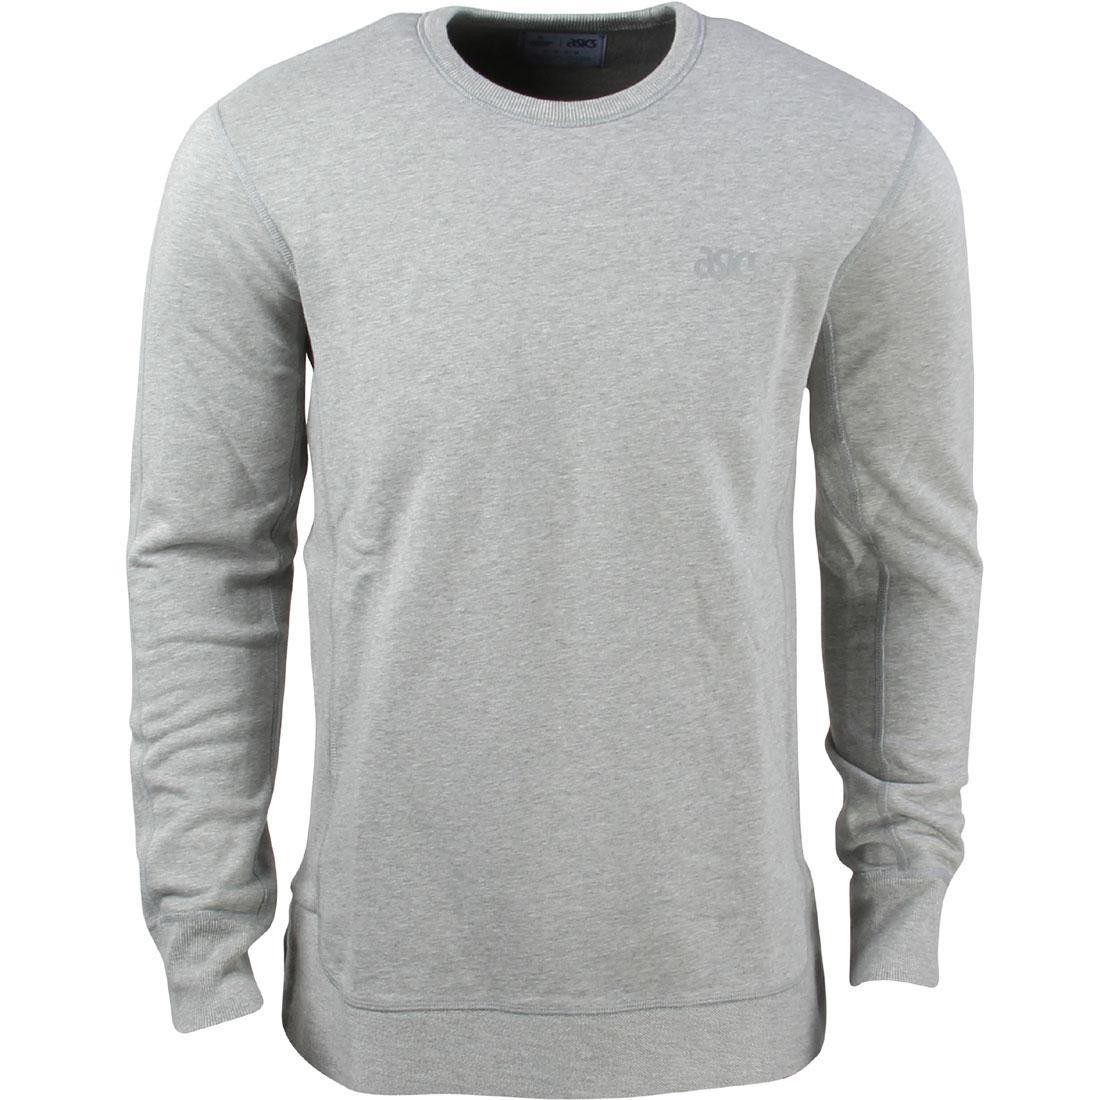 asics tiger x reigning champ men crewneck (grey / heather grey)